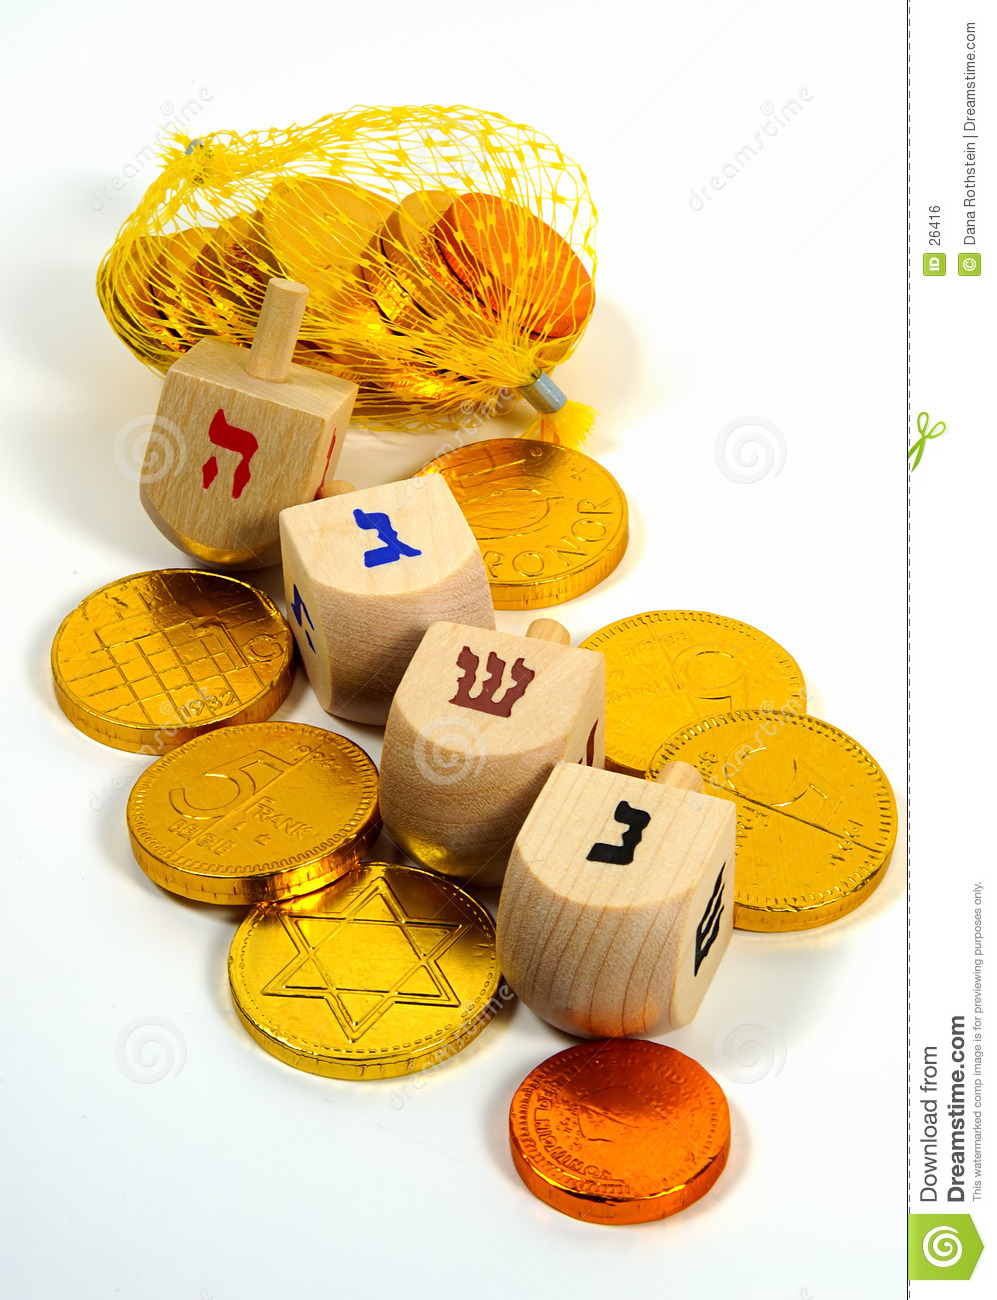 Wooden Dreidels and Gelt